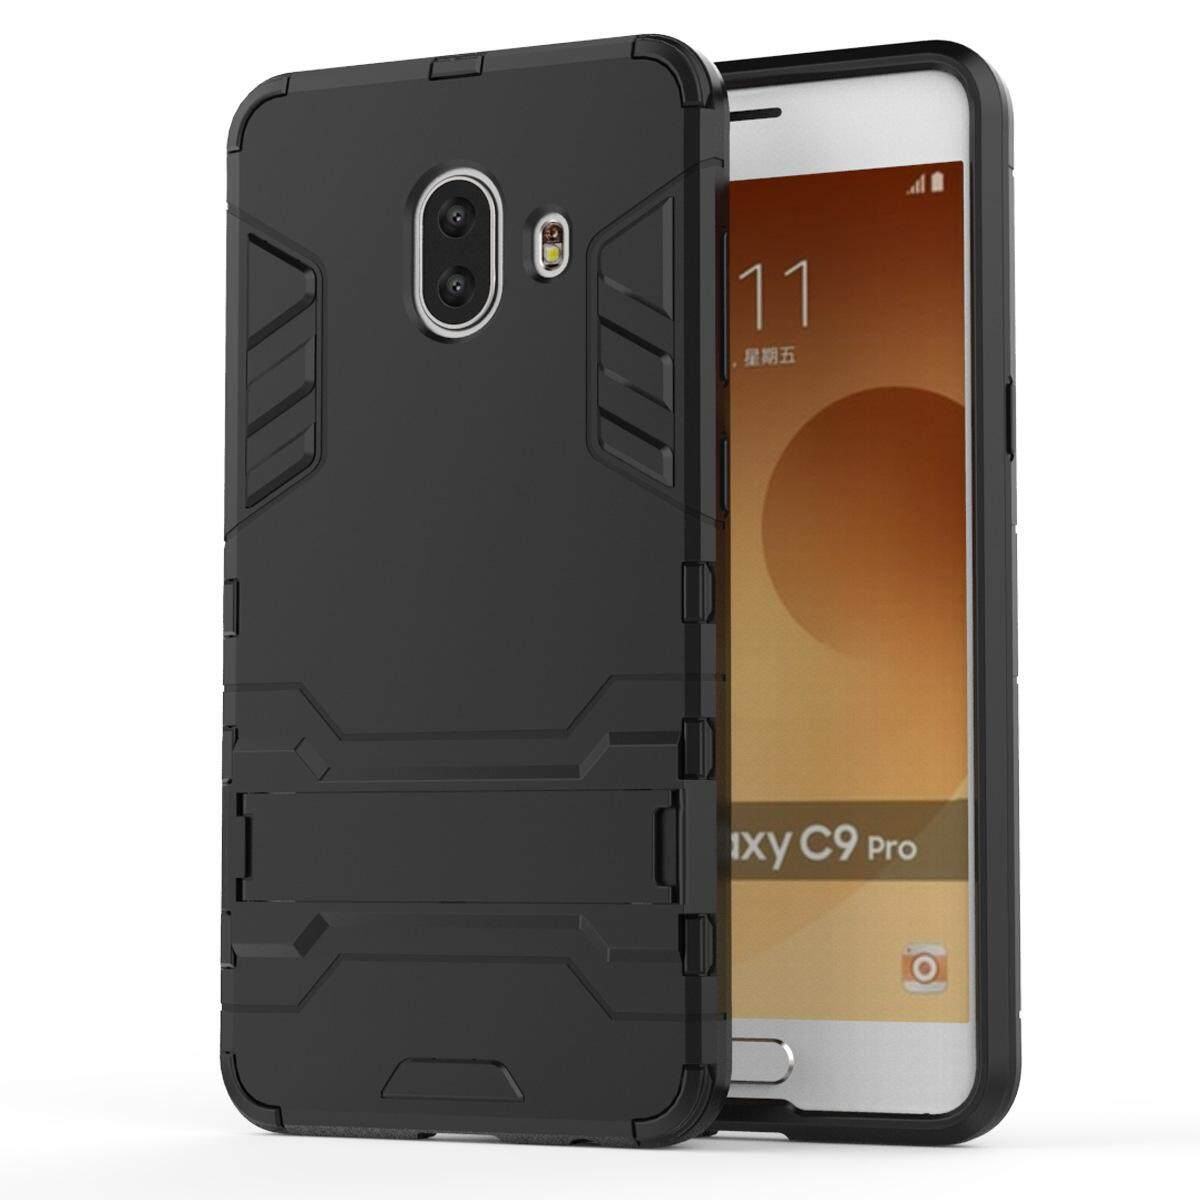 Hình ảnh for Samsung Galaxy C10 Case 2in1 PC+TPU Hybrid Slim Back Case Ultra Thin Armor Cover, with Kickstand Holder, Glossy, Minimalist, Casual